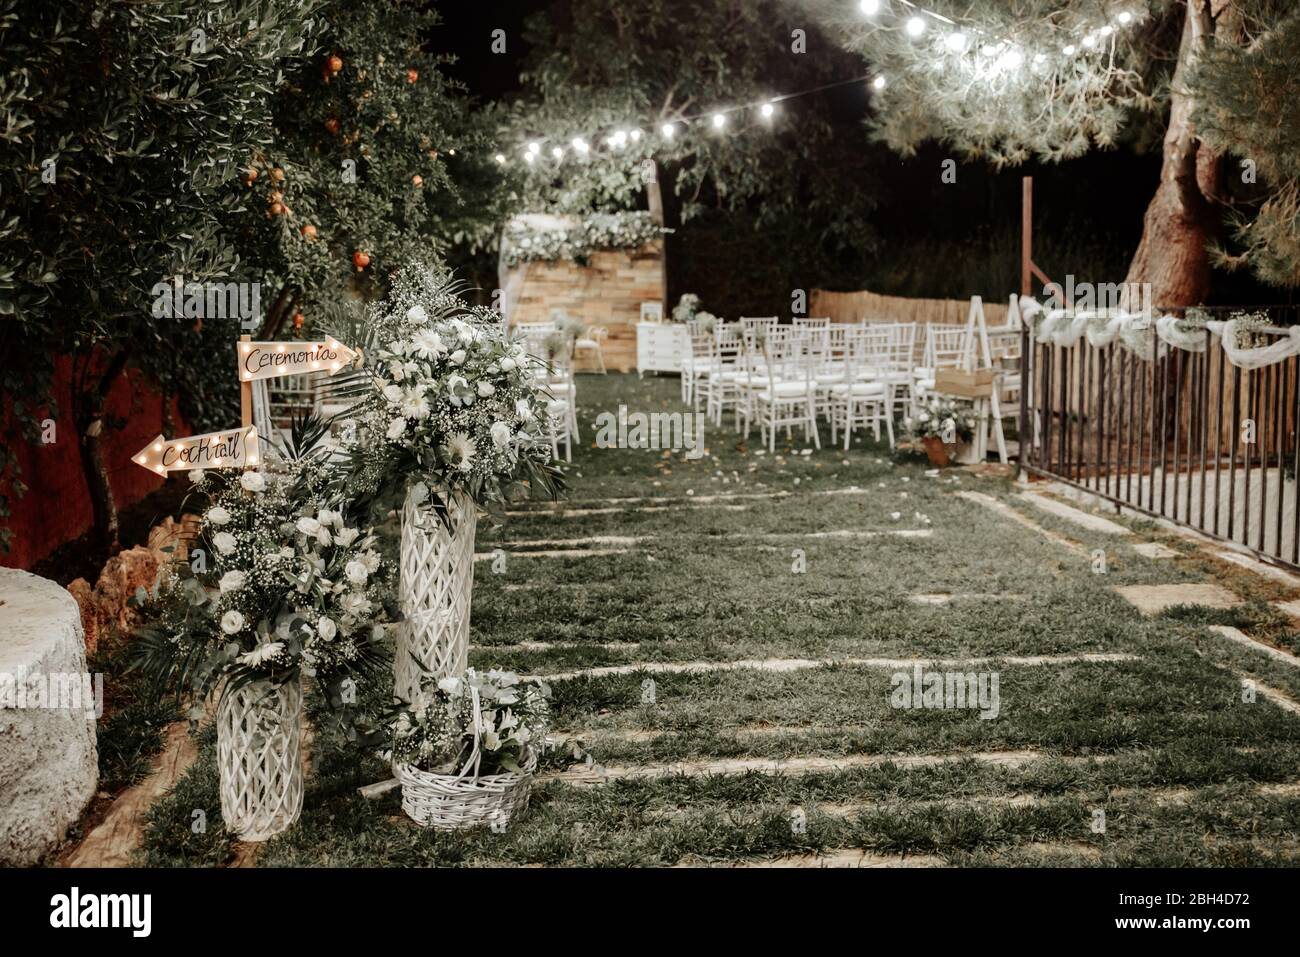 Night Wedding Outdoor Decoration Decorated Meadow For Wedding Ceremony Stock Photo Alamy